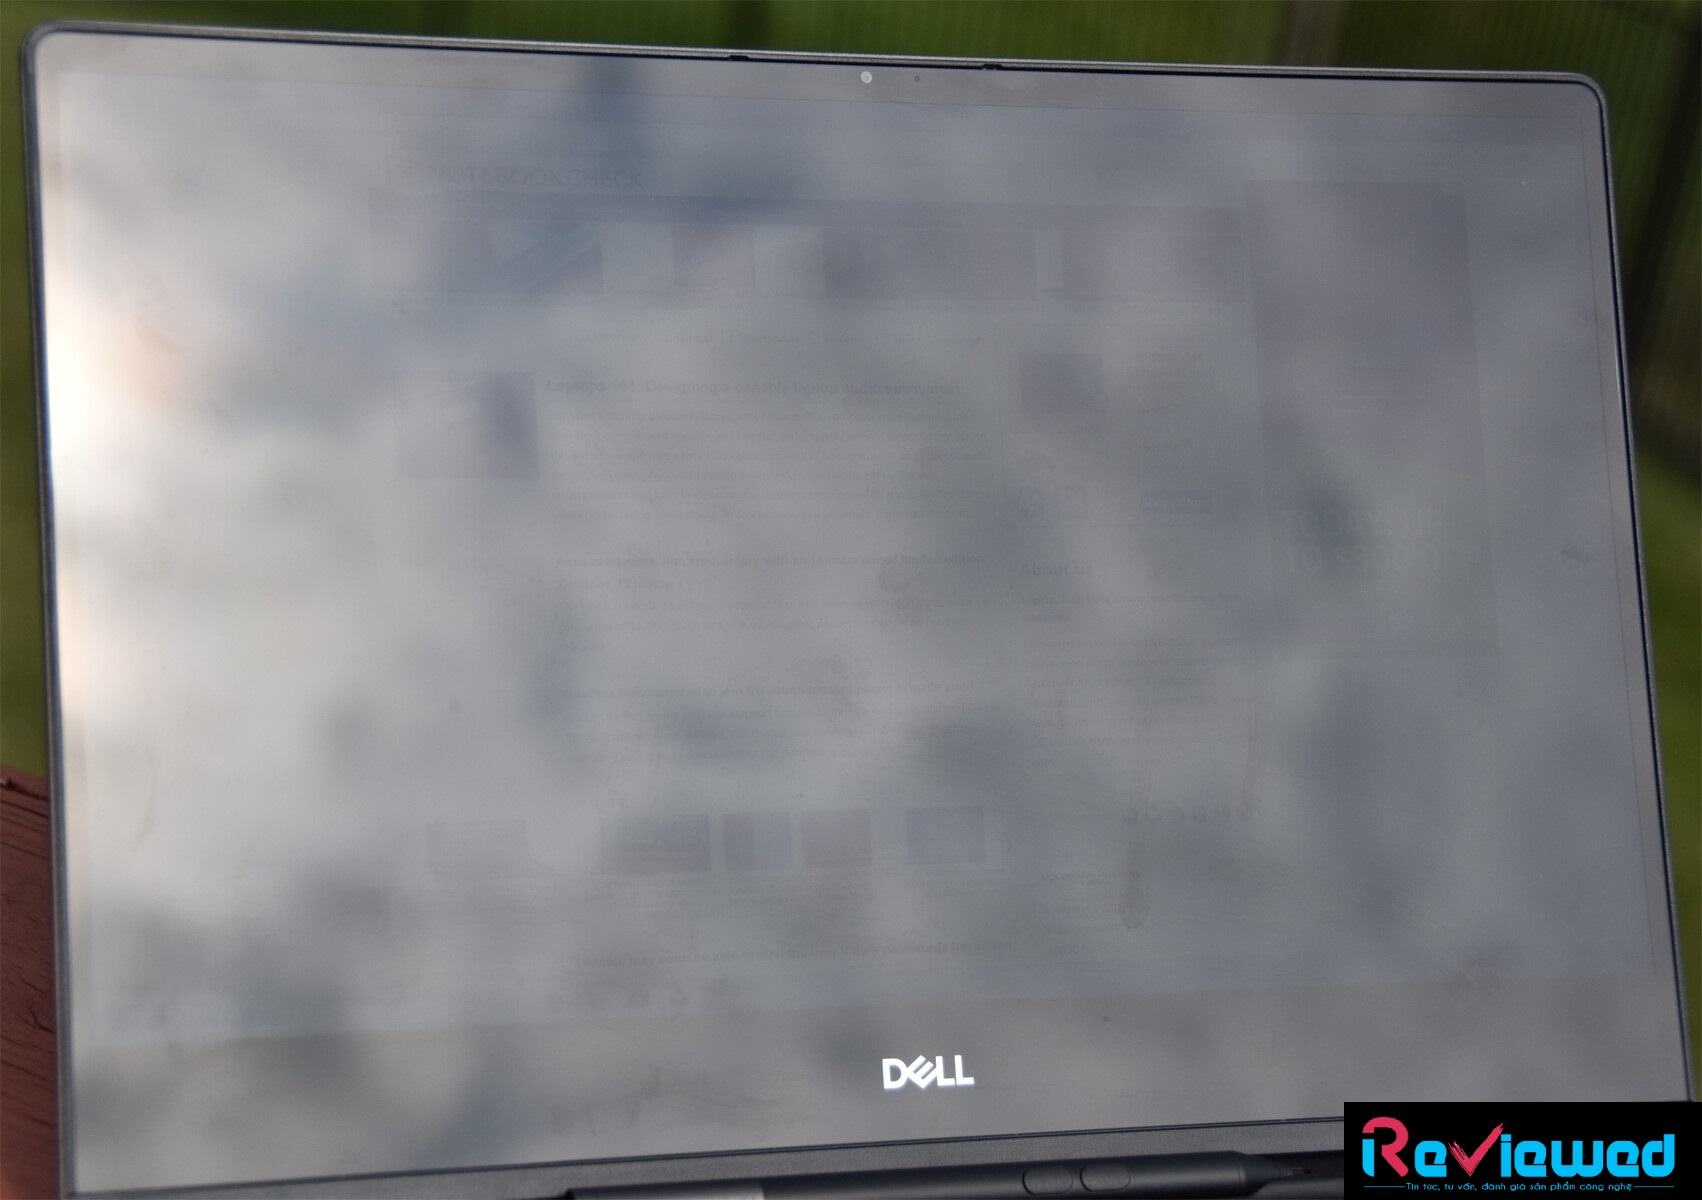 Dell Inspiron 7390 2 in 1